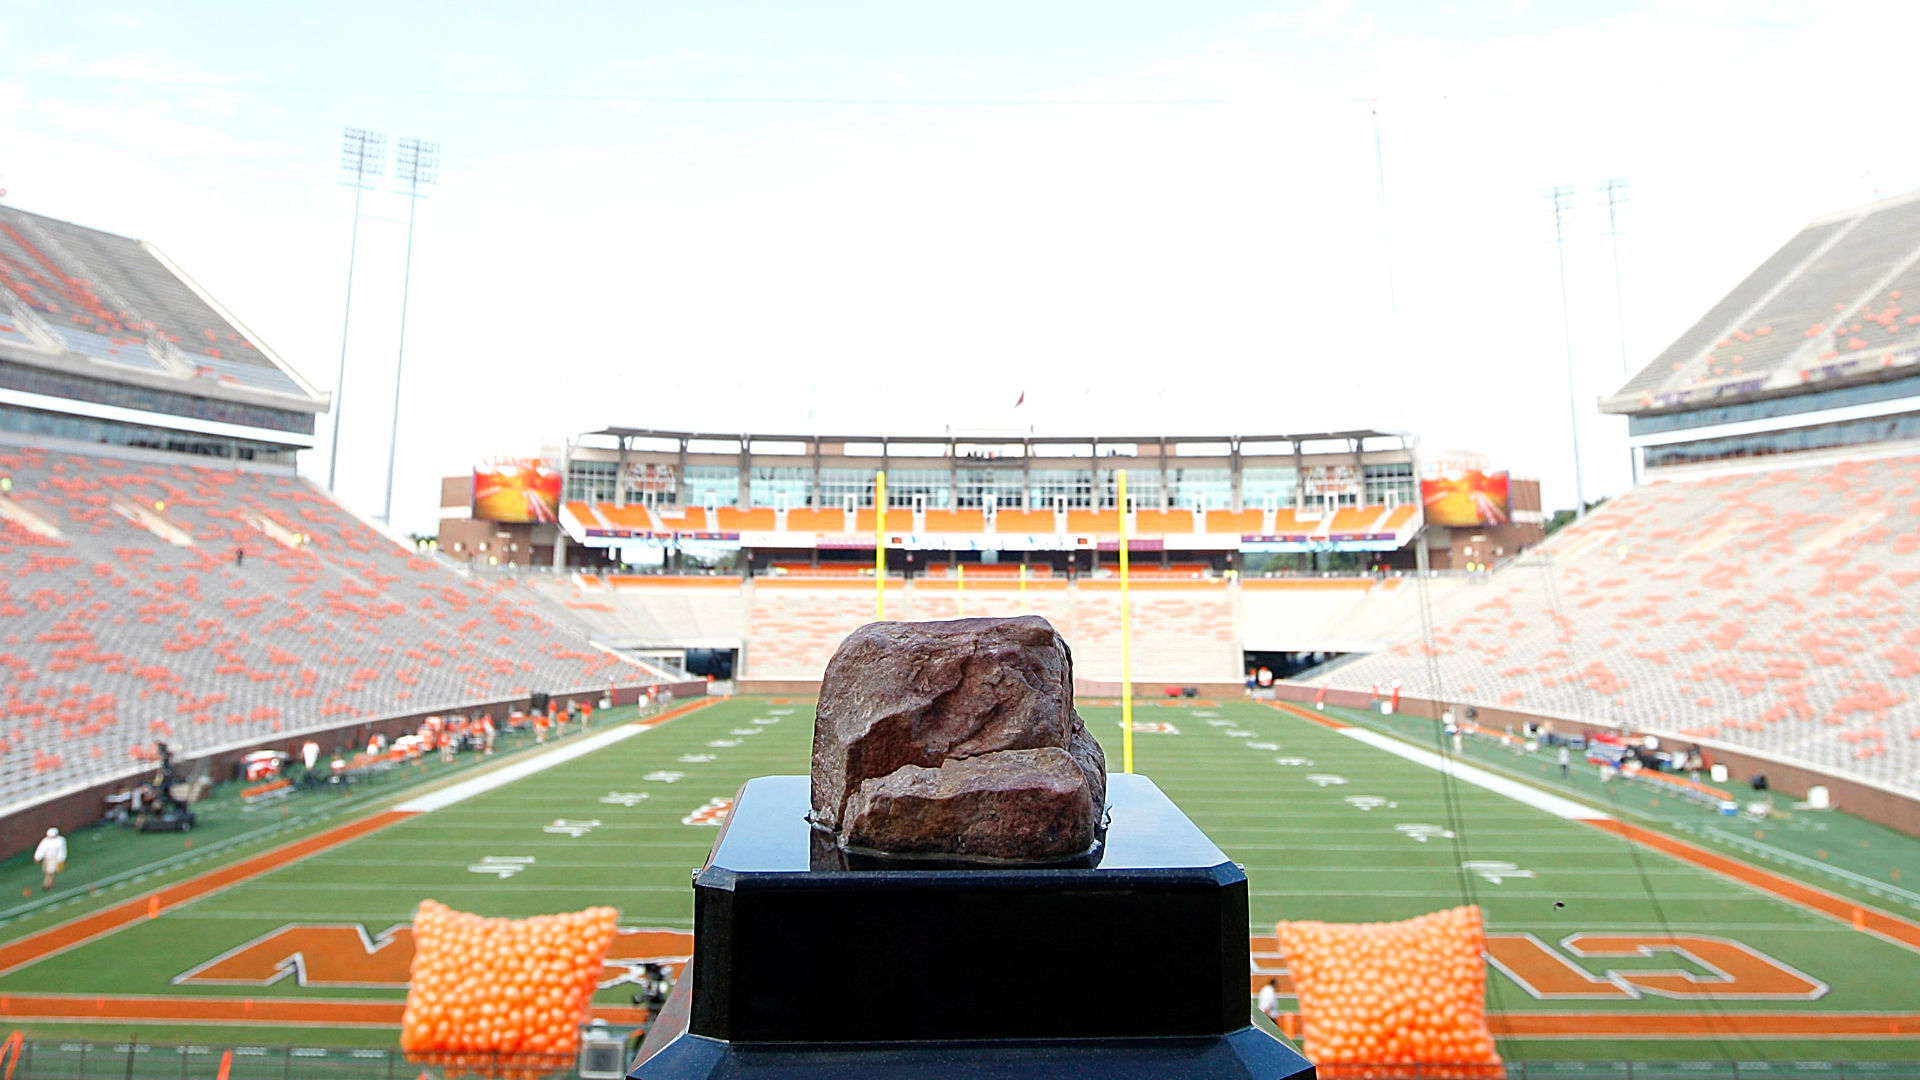 Case Protecting Clemson S Iconic Howard S Rock Vanadlized Sporting News Six of those 10 singles reached the top ten, including, what is love?, new song, and things can only get better.his 1984 album human's lib reached number one on the uk albums chart.around the world, jones had 15 top 40 hit singles between. case protecting clemson s iconic howard